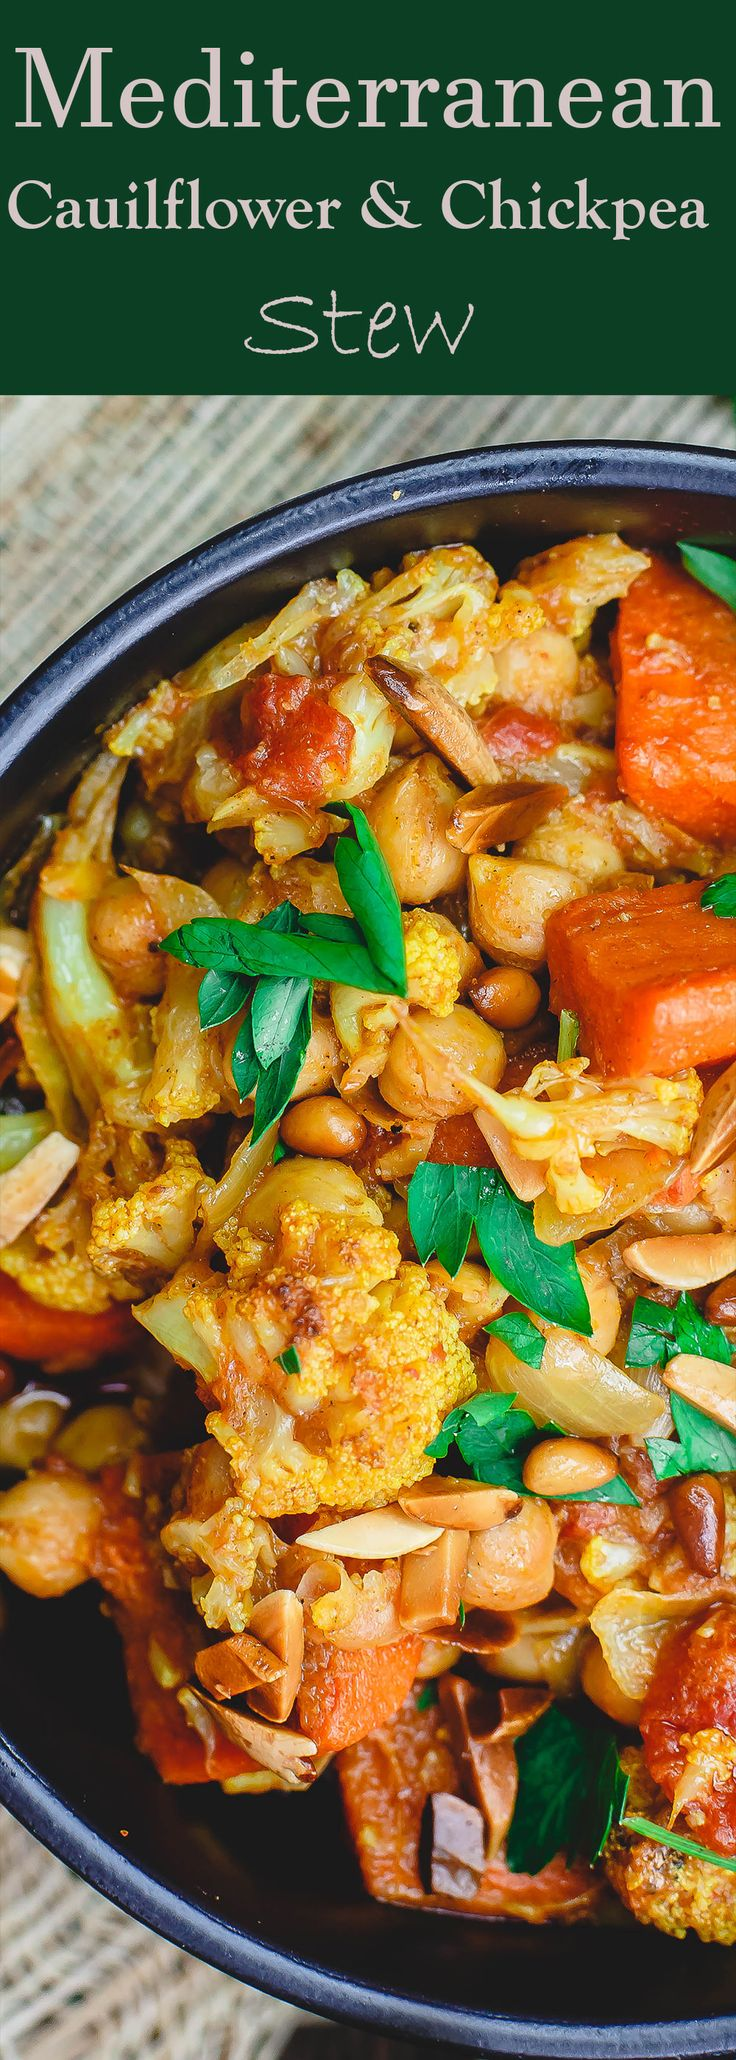 Turmeric Roasted Cauliflower and Chickpea Stew Recipe (tutorial)| The Mediterranean Dish. A delicious vegan, gluten free chickpea stew that is hearty, healthy and flavor-packed. Roasted cauliflower and carrots are added with chickpeas and spices in a chunky tomato sauce. Easy Mediterranean recipe with step-by-step tutorial from TheMediterraneanDish.com #mediterraneandiet #mediterraneanrecipe #chickpearecipe #cauliflowerrecipe #turmericrecipe